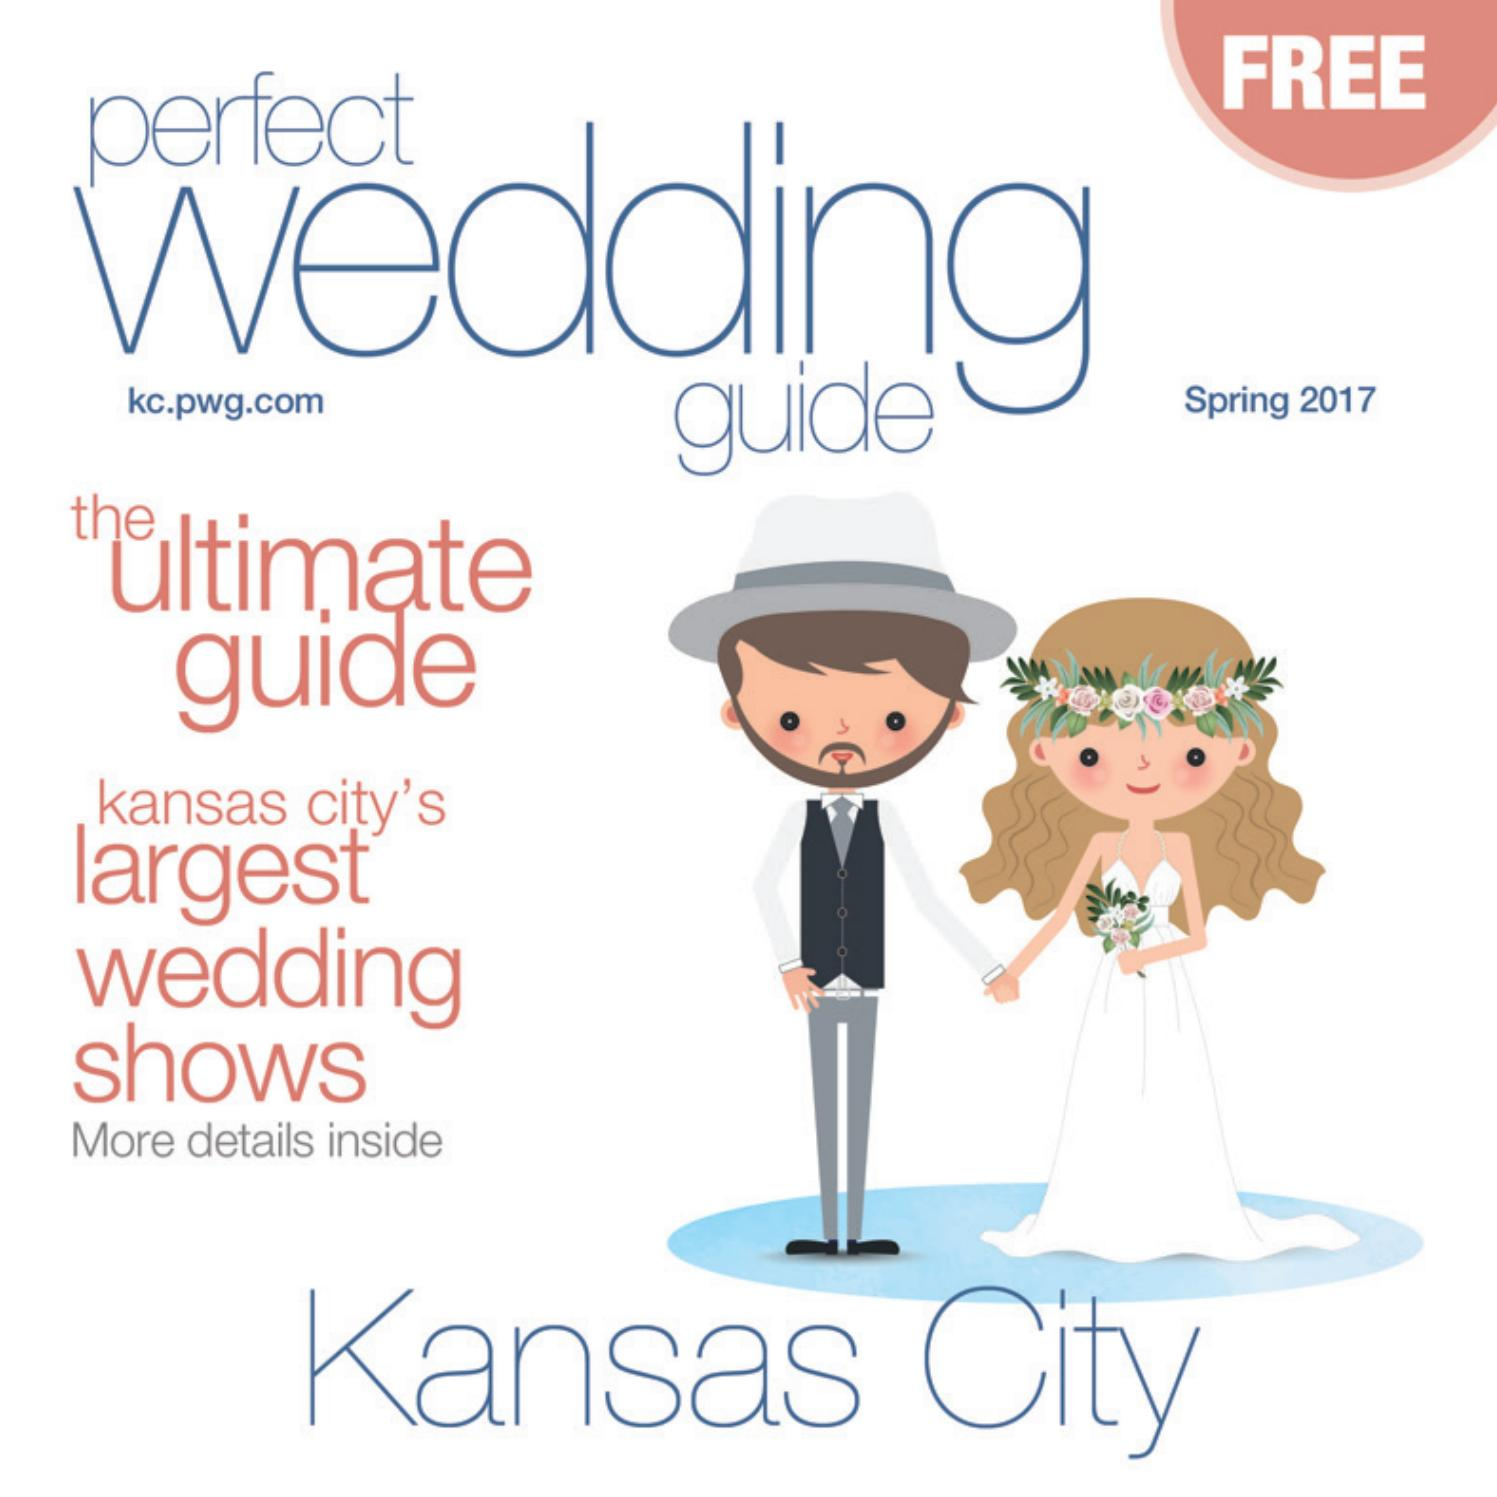 Perfect Wedding Guide Kansas City Summer/Fall 2016 by Rick.